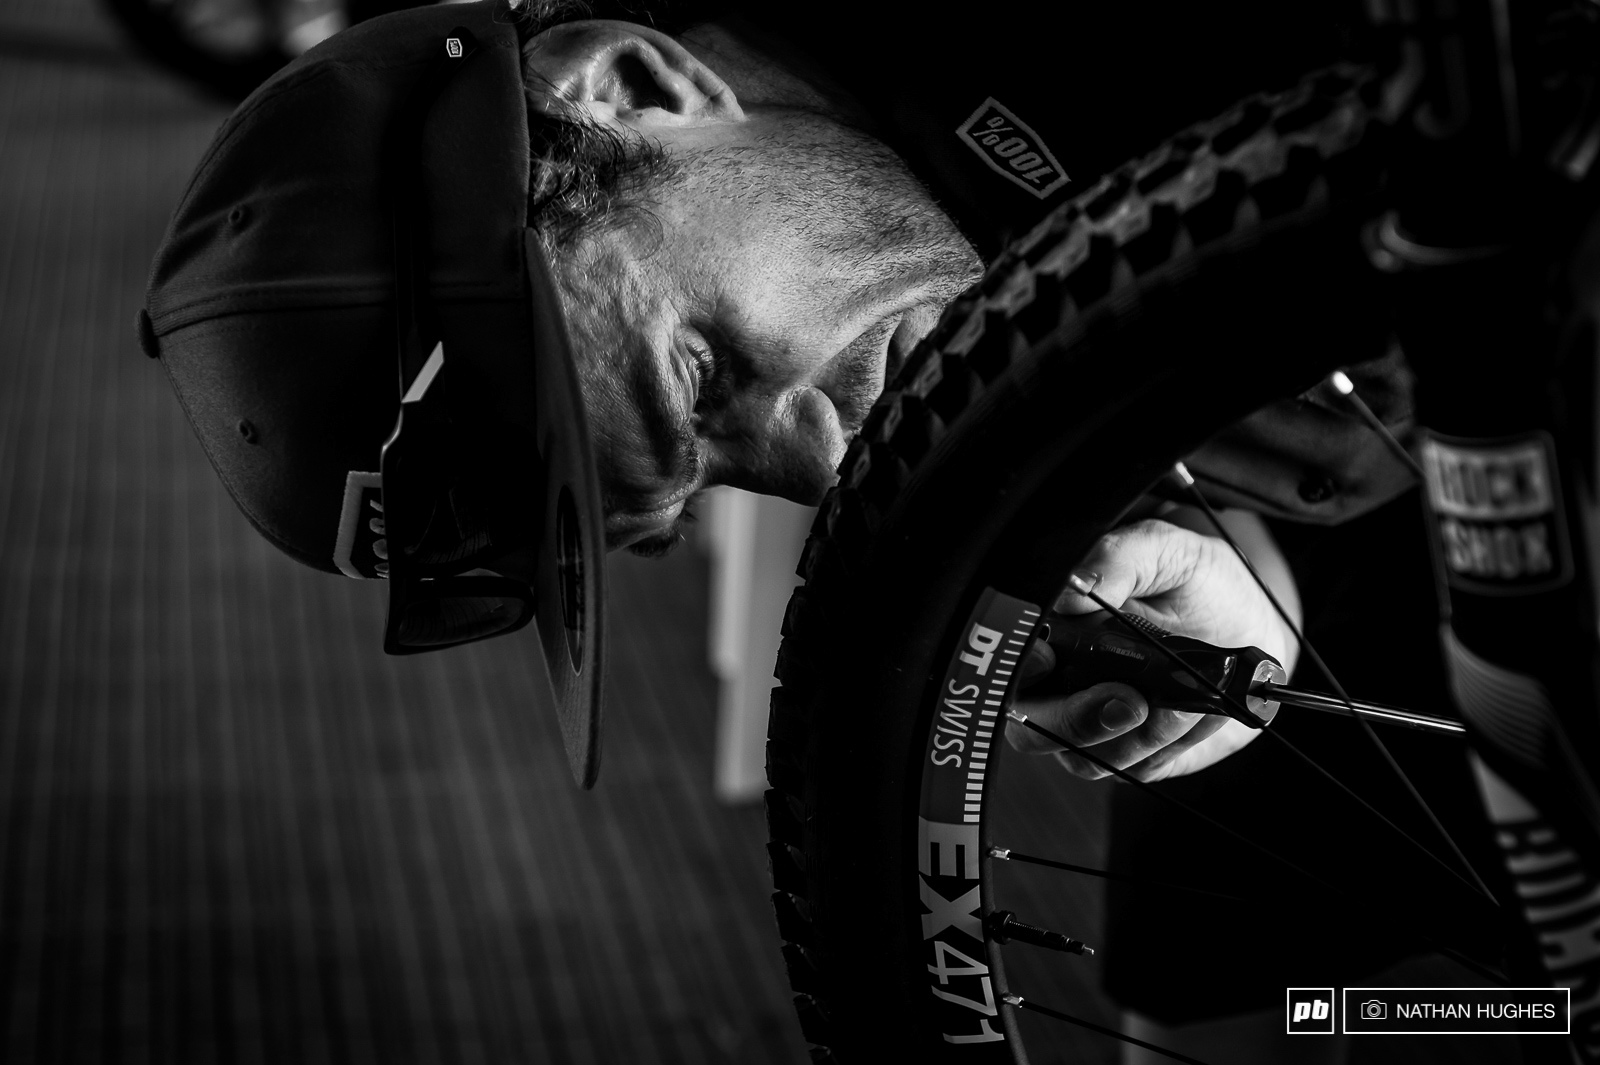 Specialized Gravity republic mechanic Jack tuning Loic s brakes. The World Champ is running bladed spokes for the high speed track.